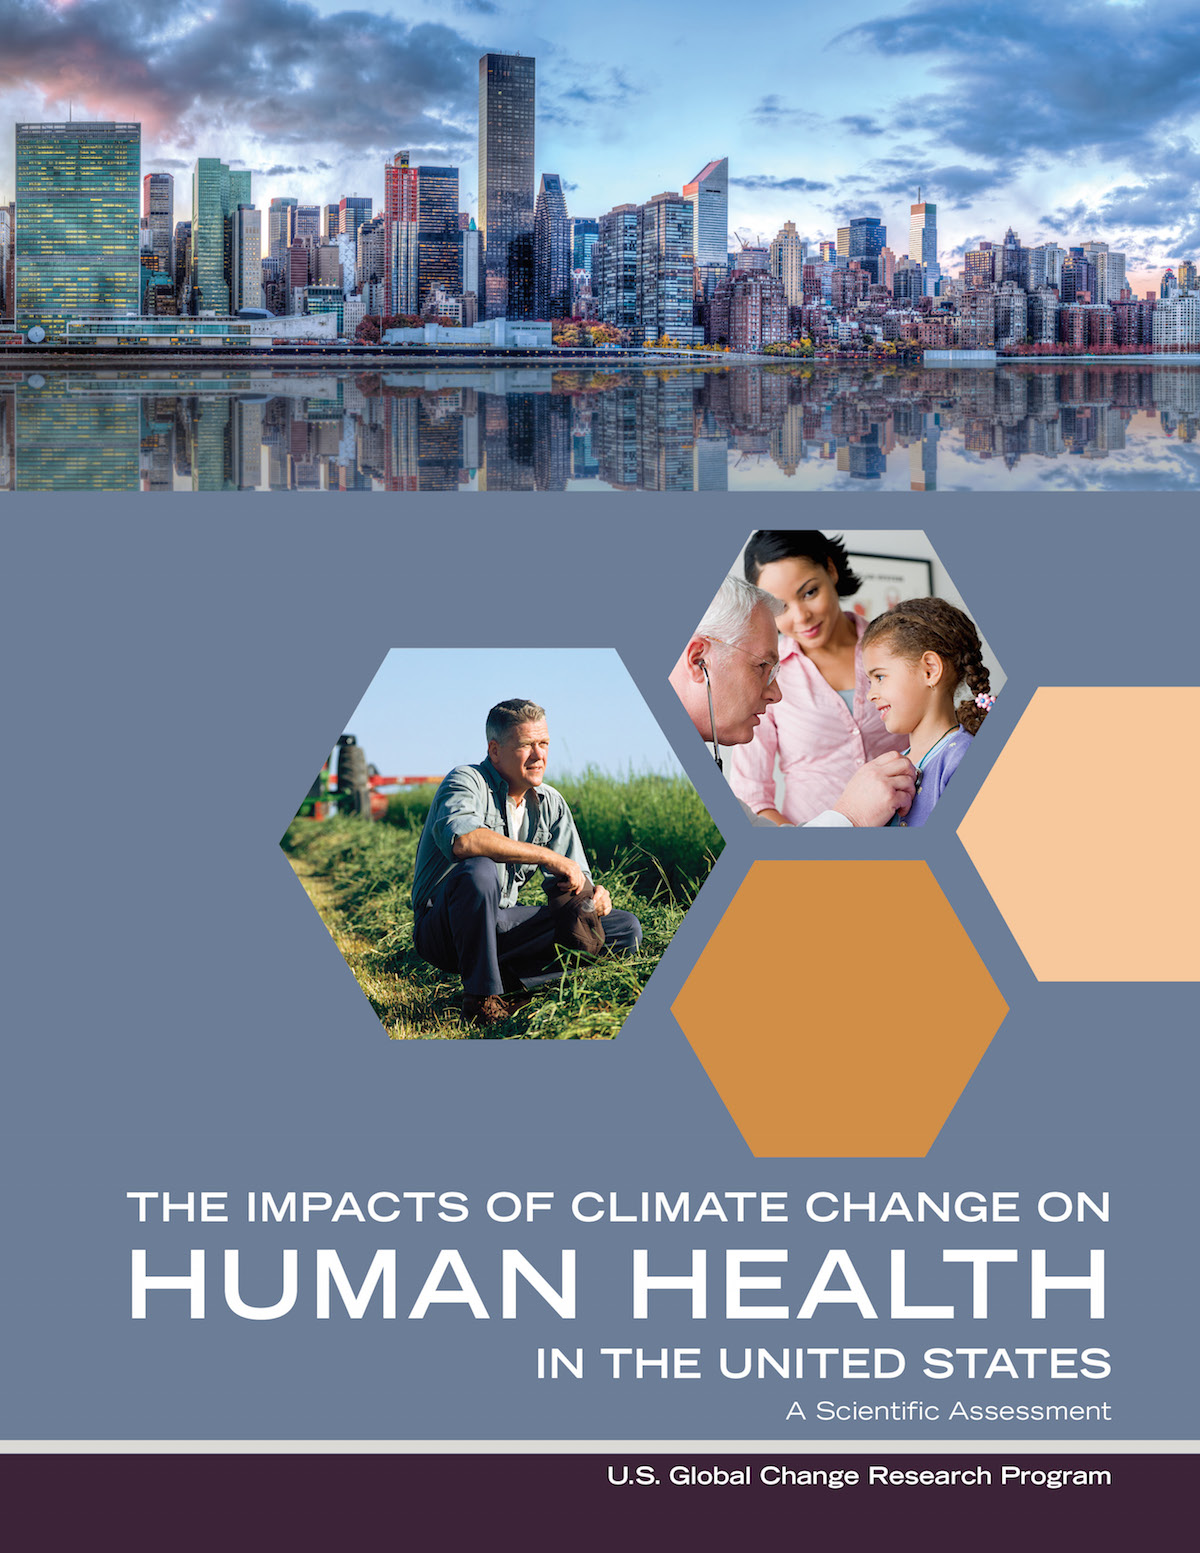 Climate Change A Growing Threat To Human Health New Usgcrp Report  Climate Change A Growing Threat To Human Health New Usgcrp Report English Essay Speech also Essay On English Subject  Essay Com In English